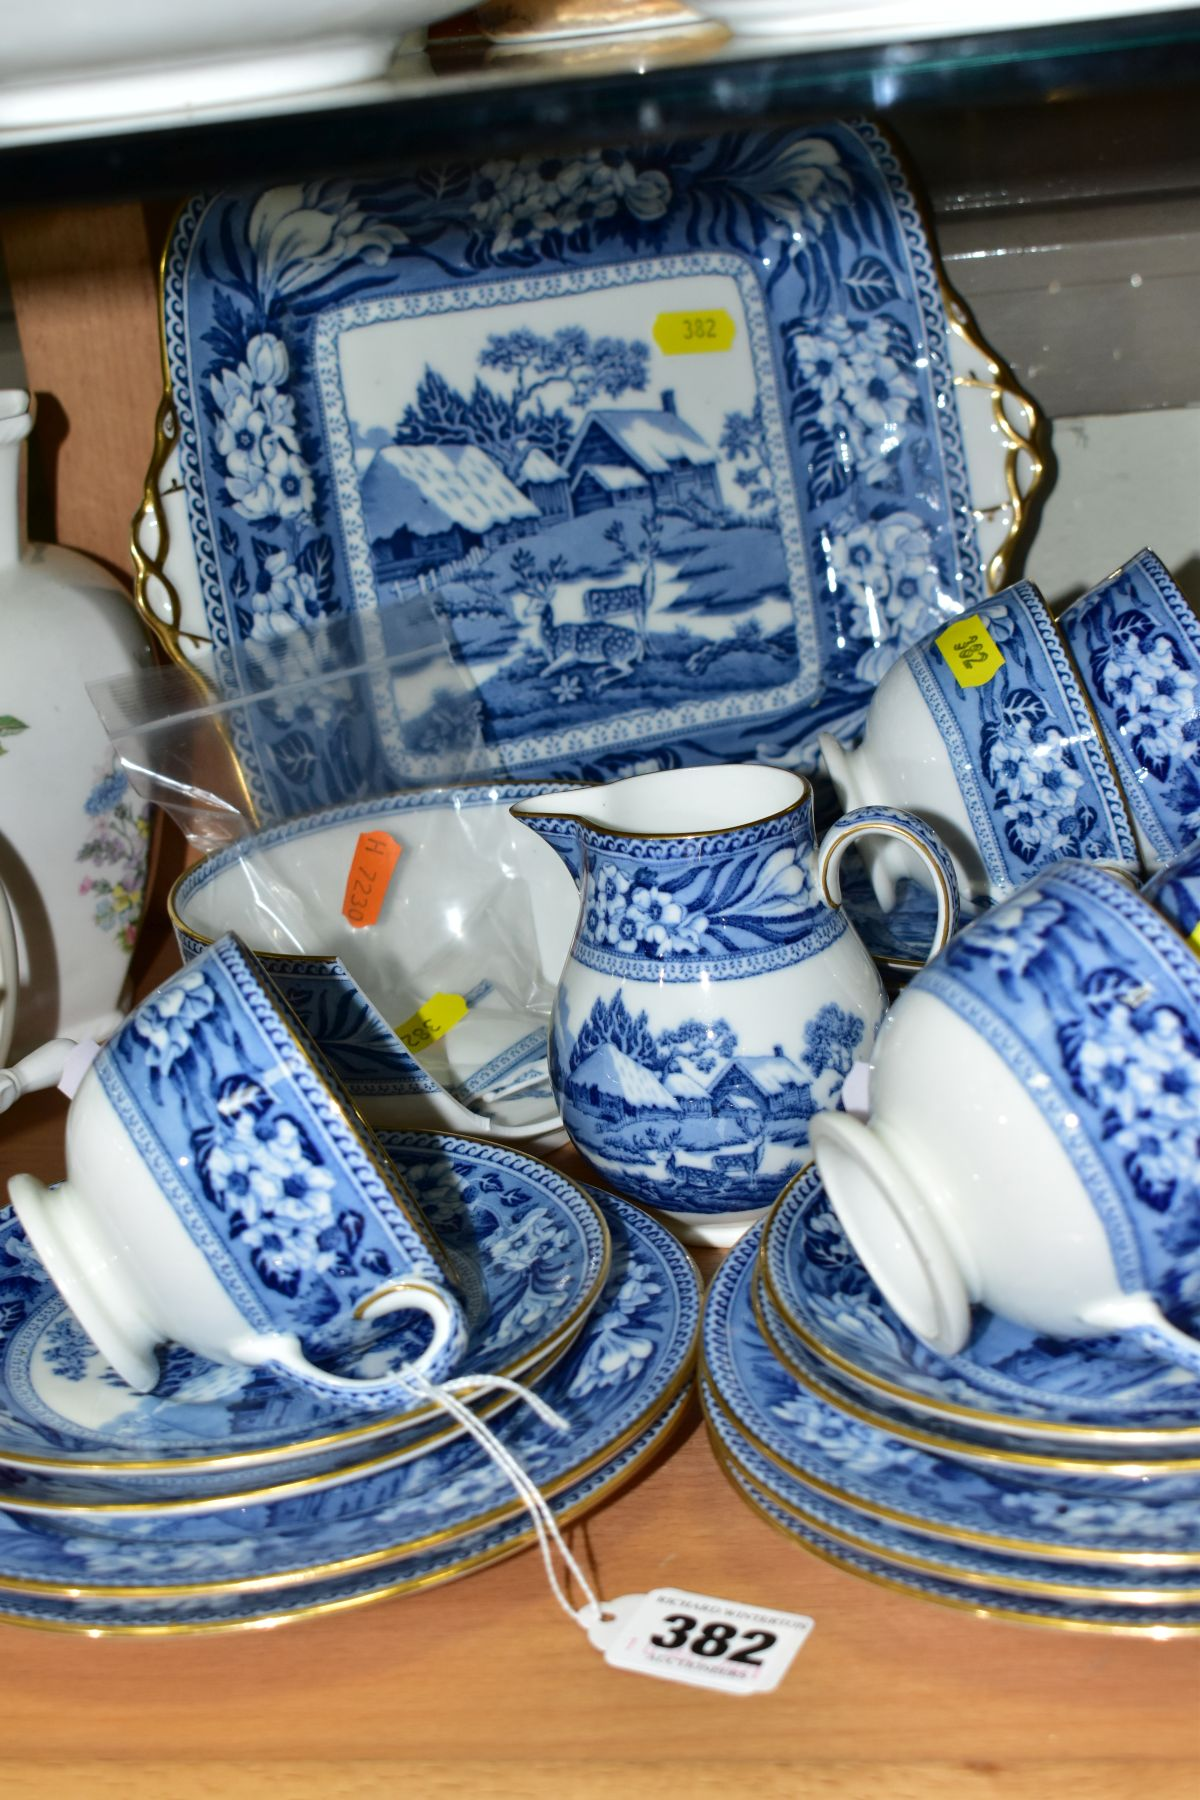 AN EARLY 20TH CENTURY WEDGWOOD BONE CHINA BLUE AND WHITE FALLOW DEER PATTERN PART TEA SET, brown